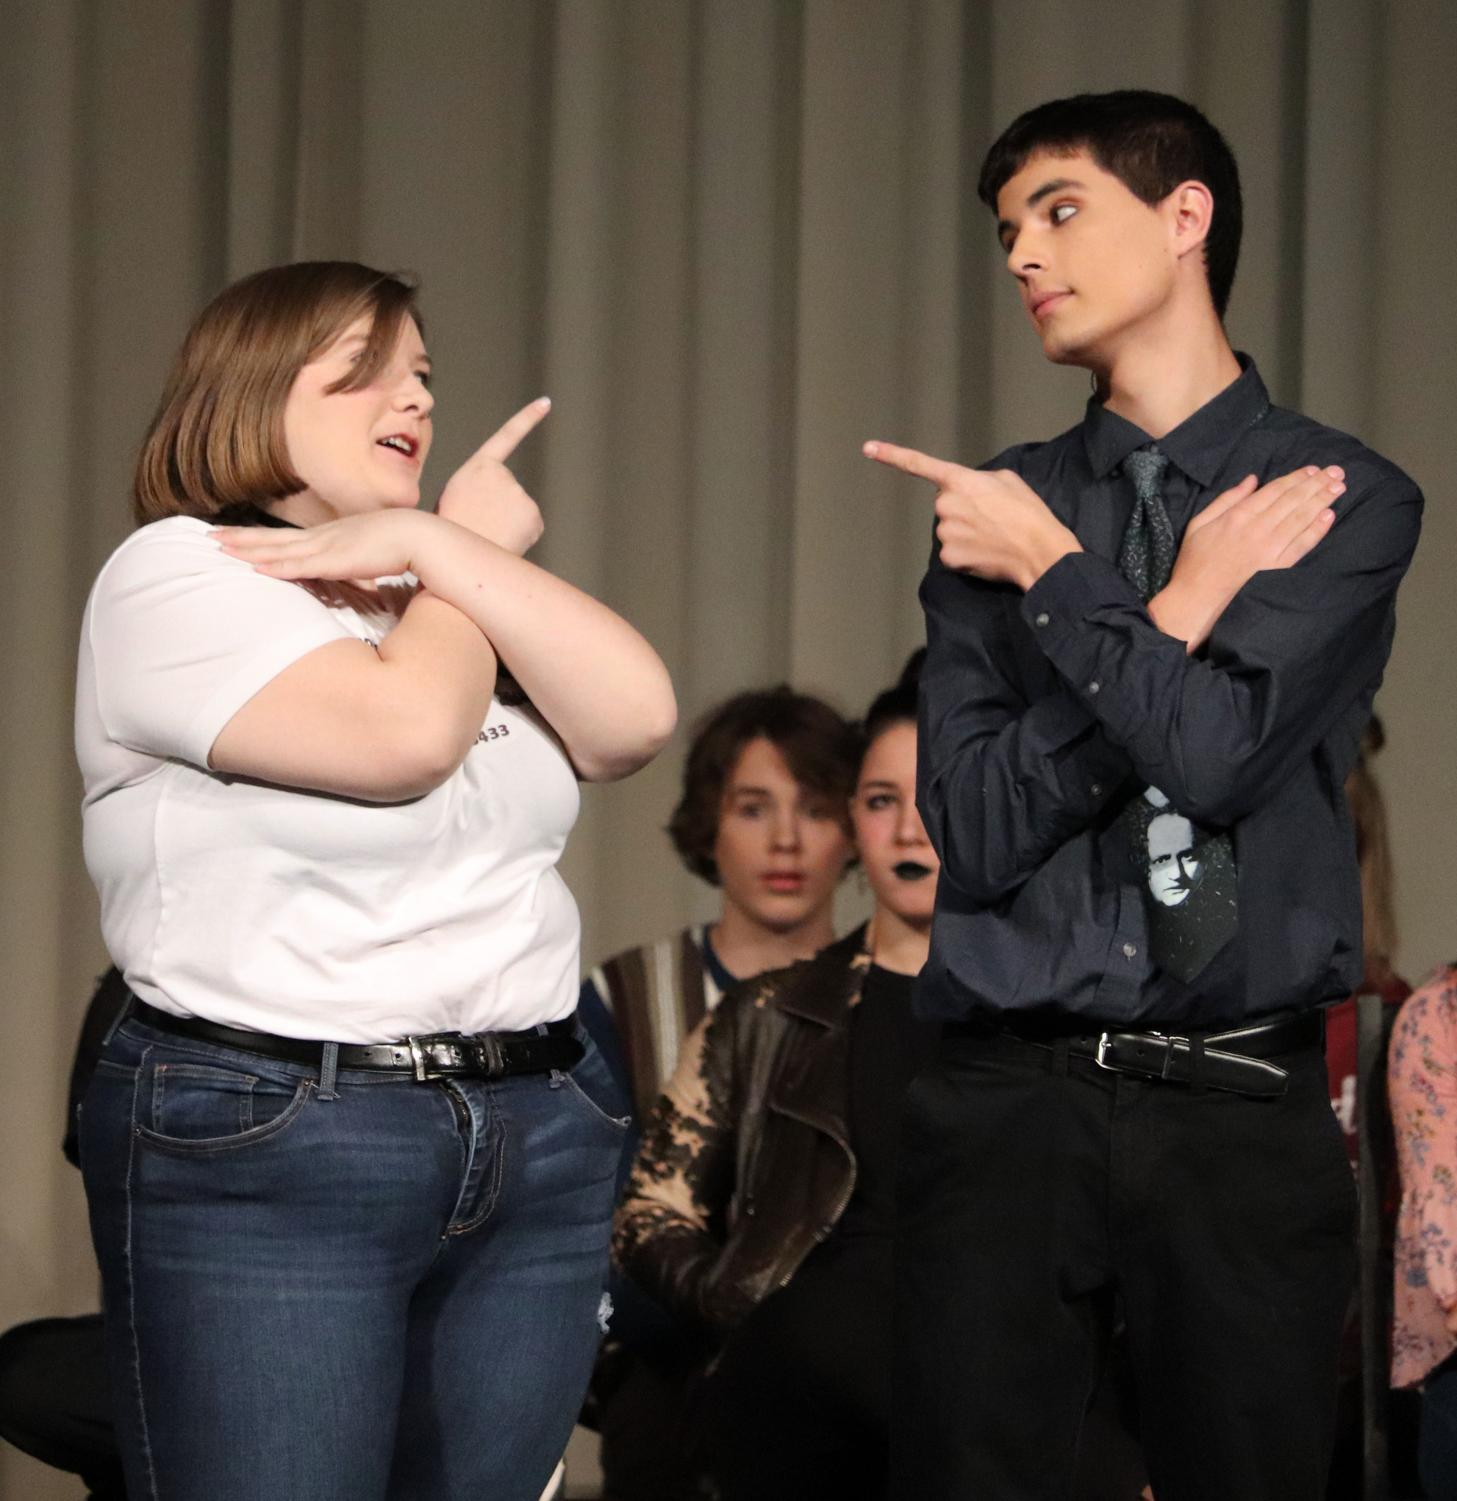 At the fall play, junior Rylie Thompson (as Clarissa Vendor) and senior Neal Zolmgann (as Mr. Scammerton) begin to dance the Macarena. This was one of the many humorous aspects included in the play